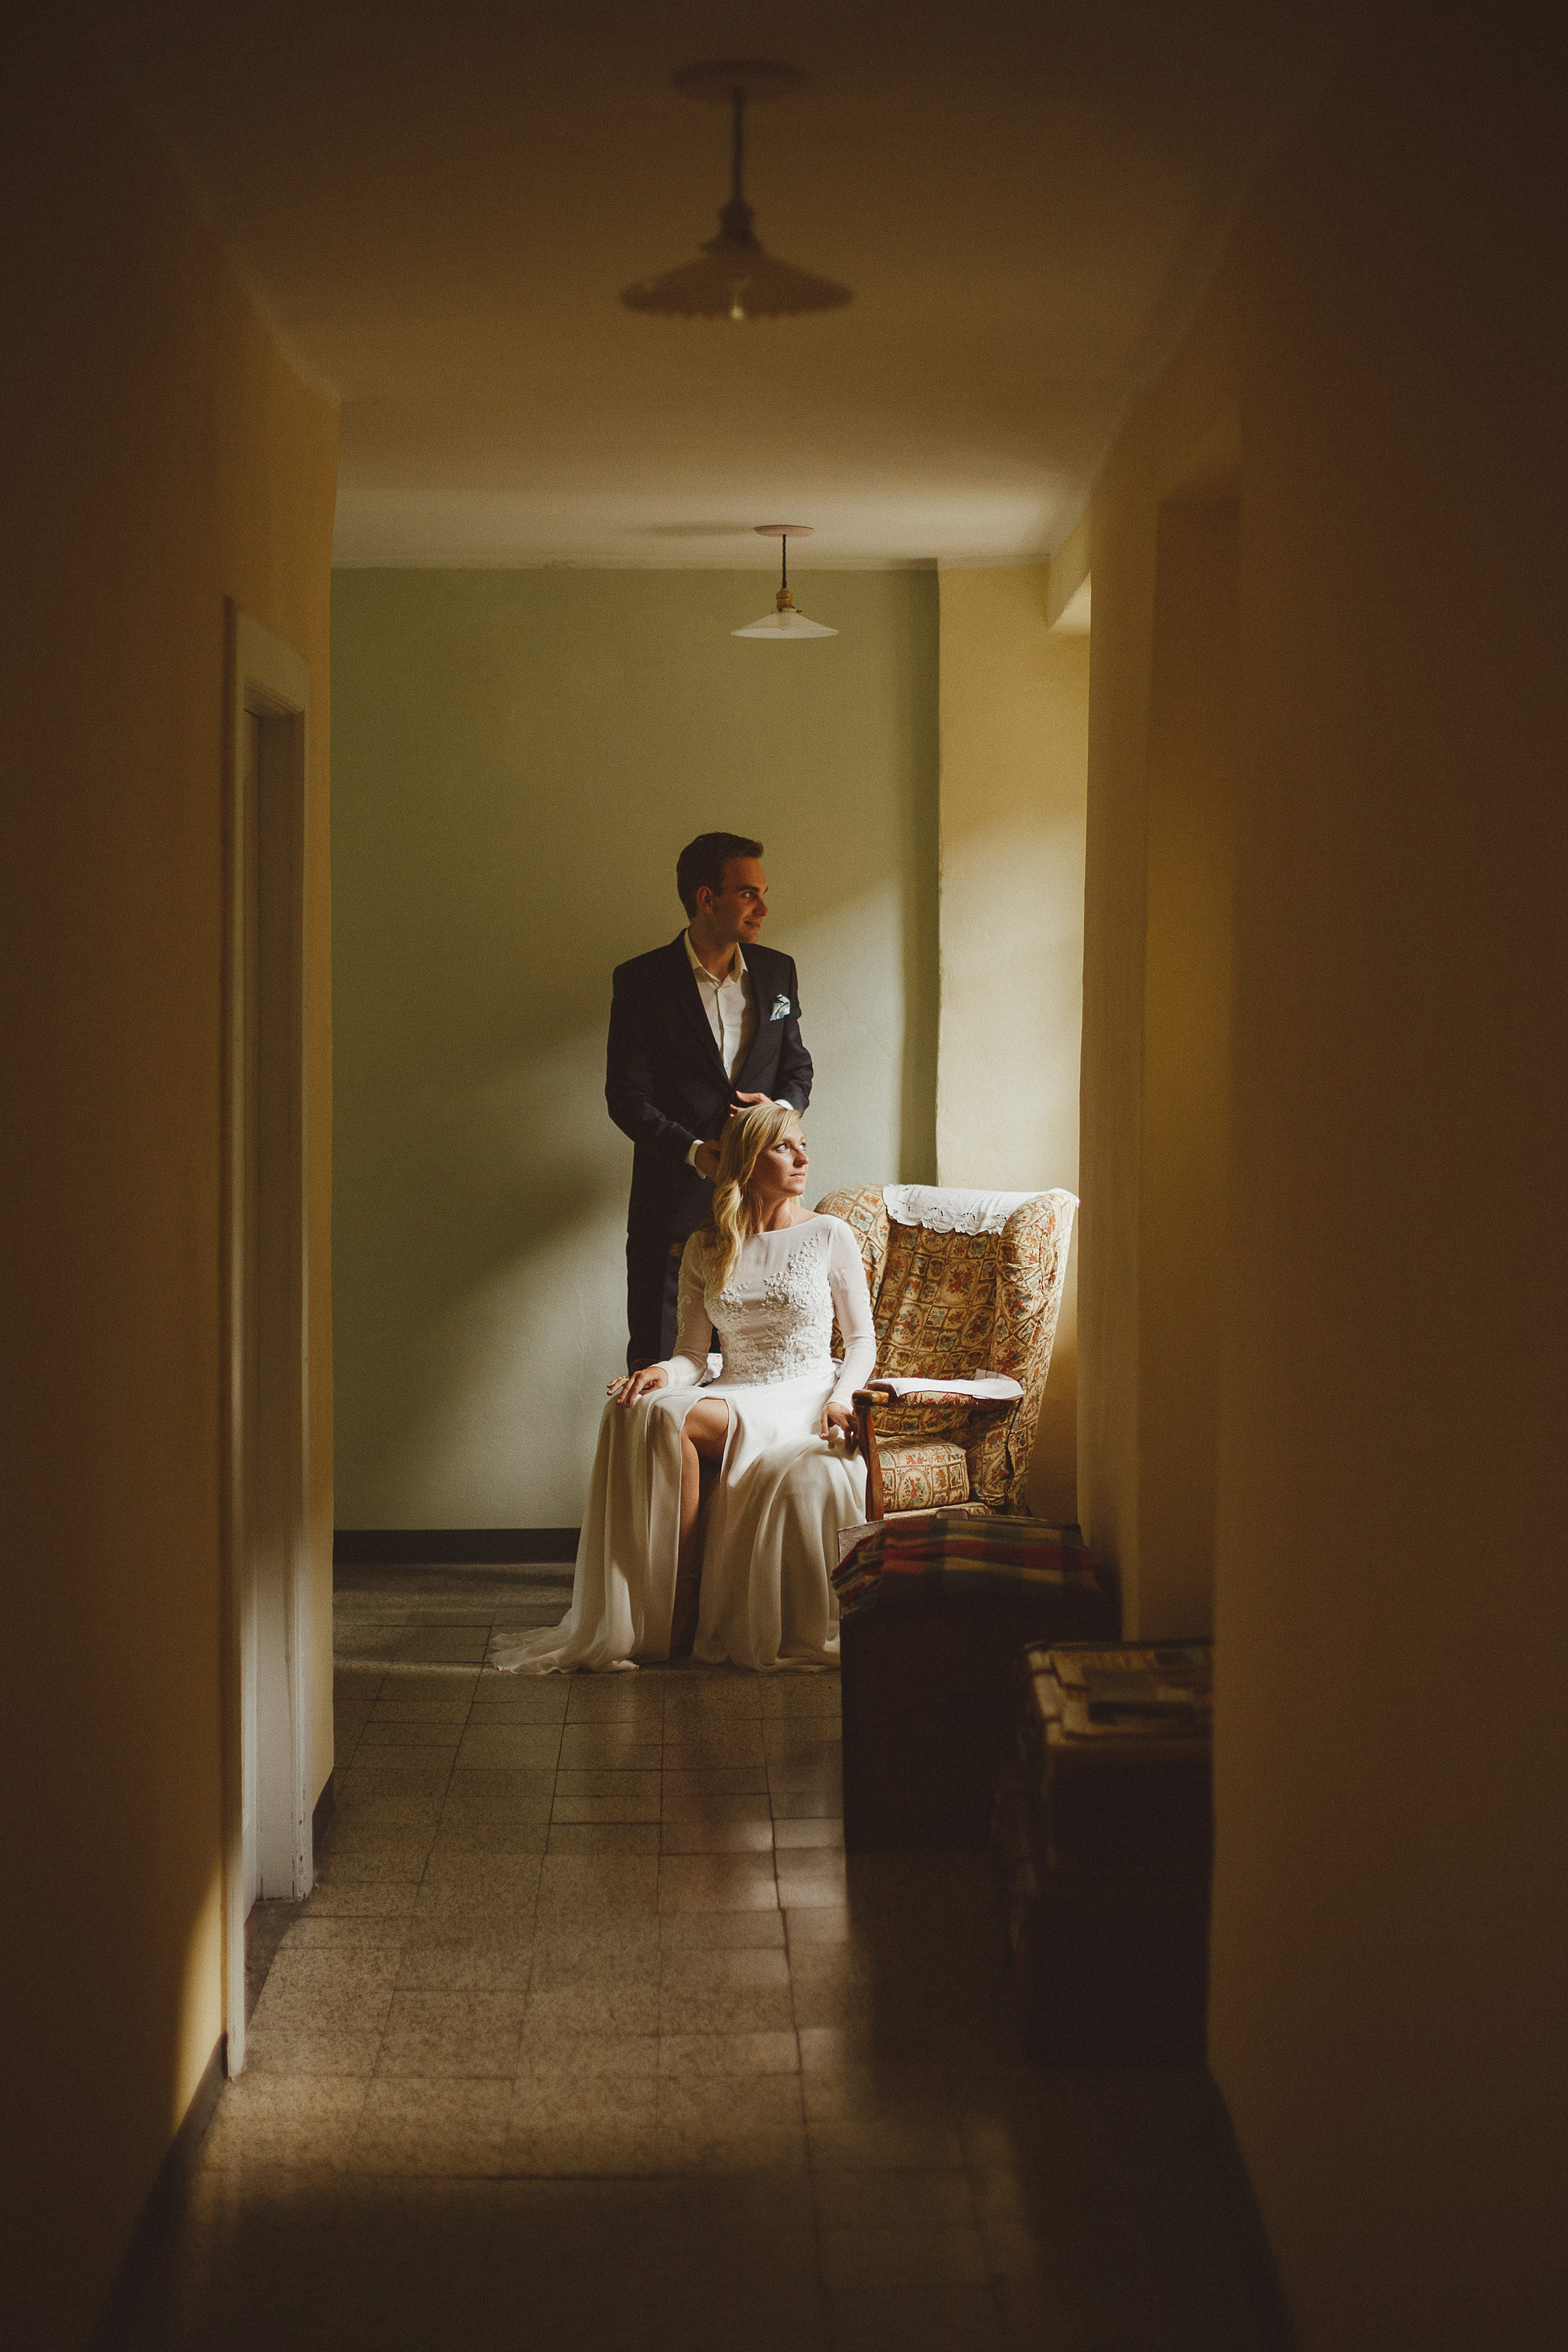 Couple portrait seated bride with window lighting - photo by Ed Peers Photography